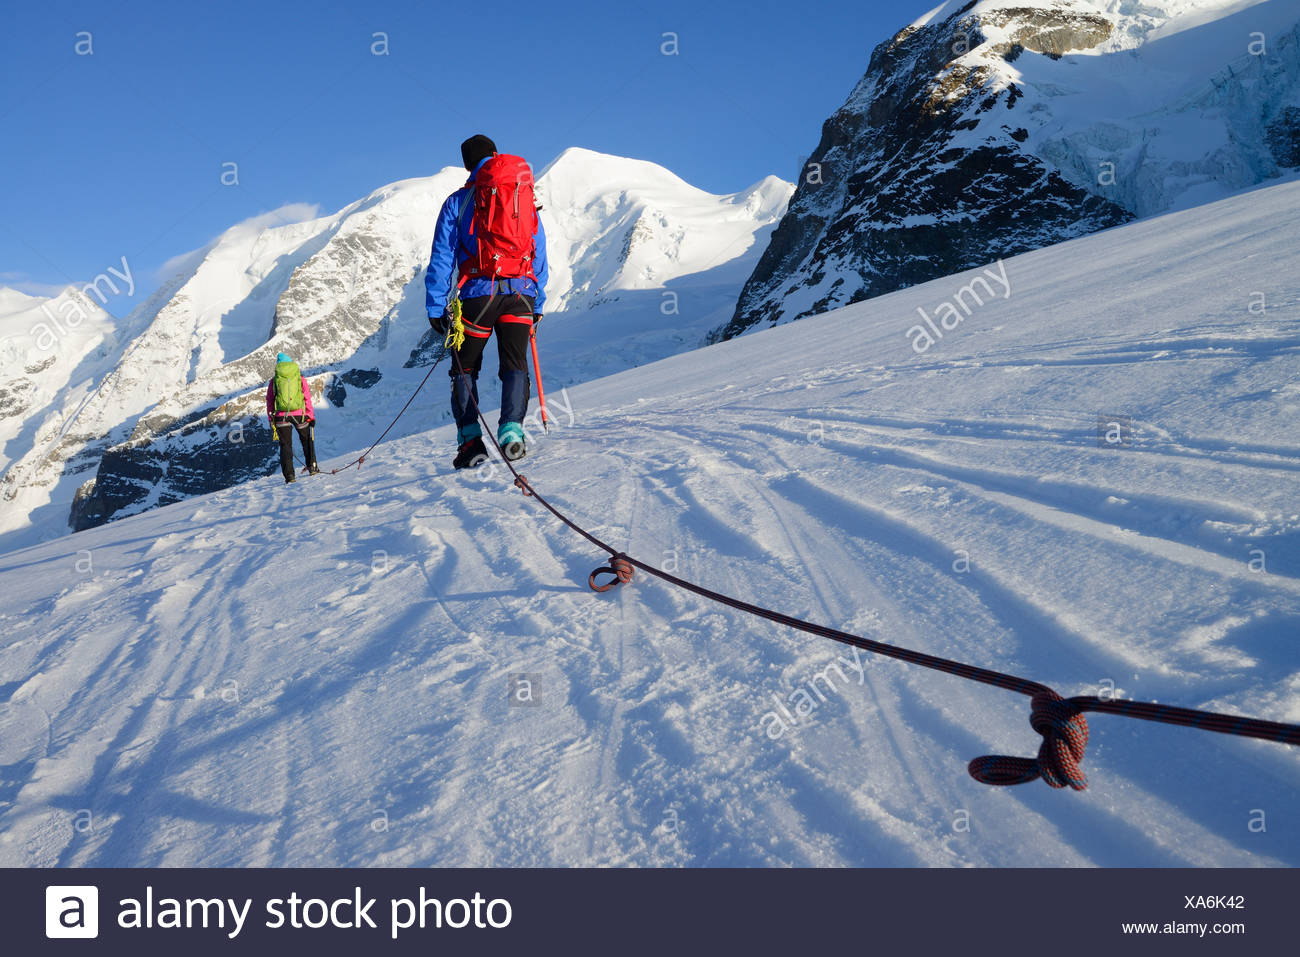 Roped party ascending on Cambrena glacier, ascent to Piz Palue, Grisons, Switzerland - Stock Image